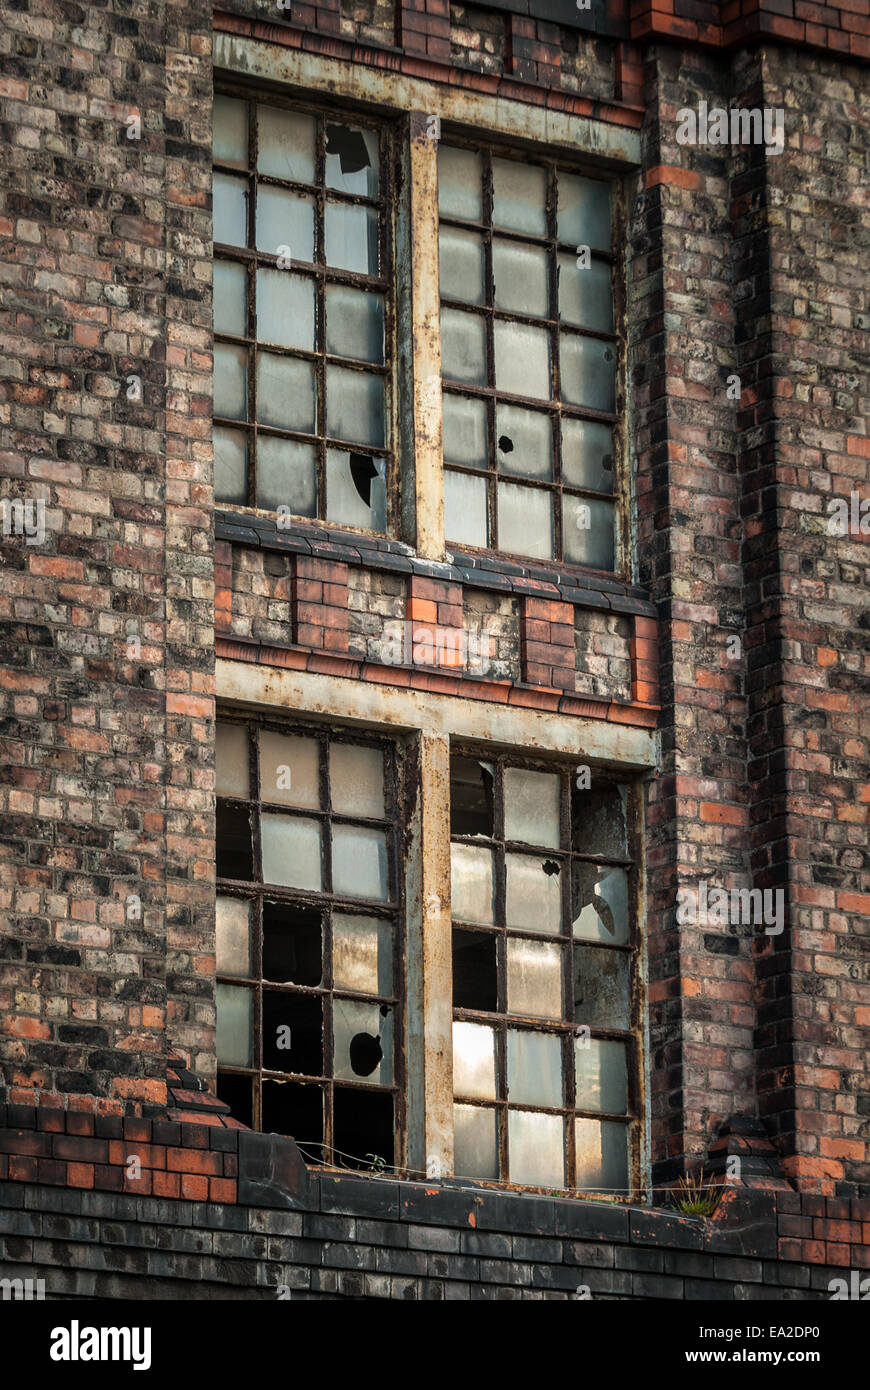 Broken window of a large brick built warehouse at the historic Stanley Dock Tobacco warehouse, Liverpool. Stock Photo